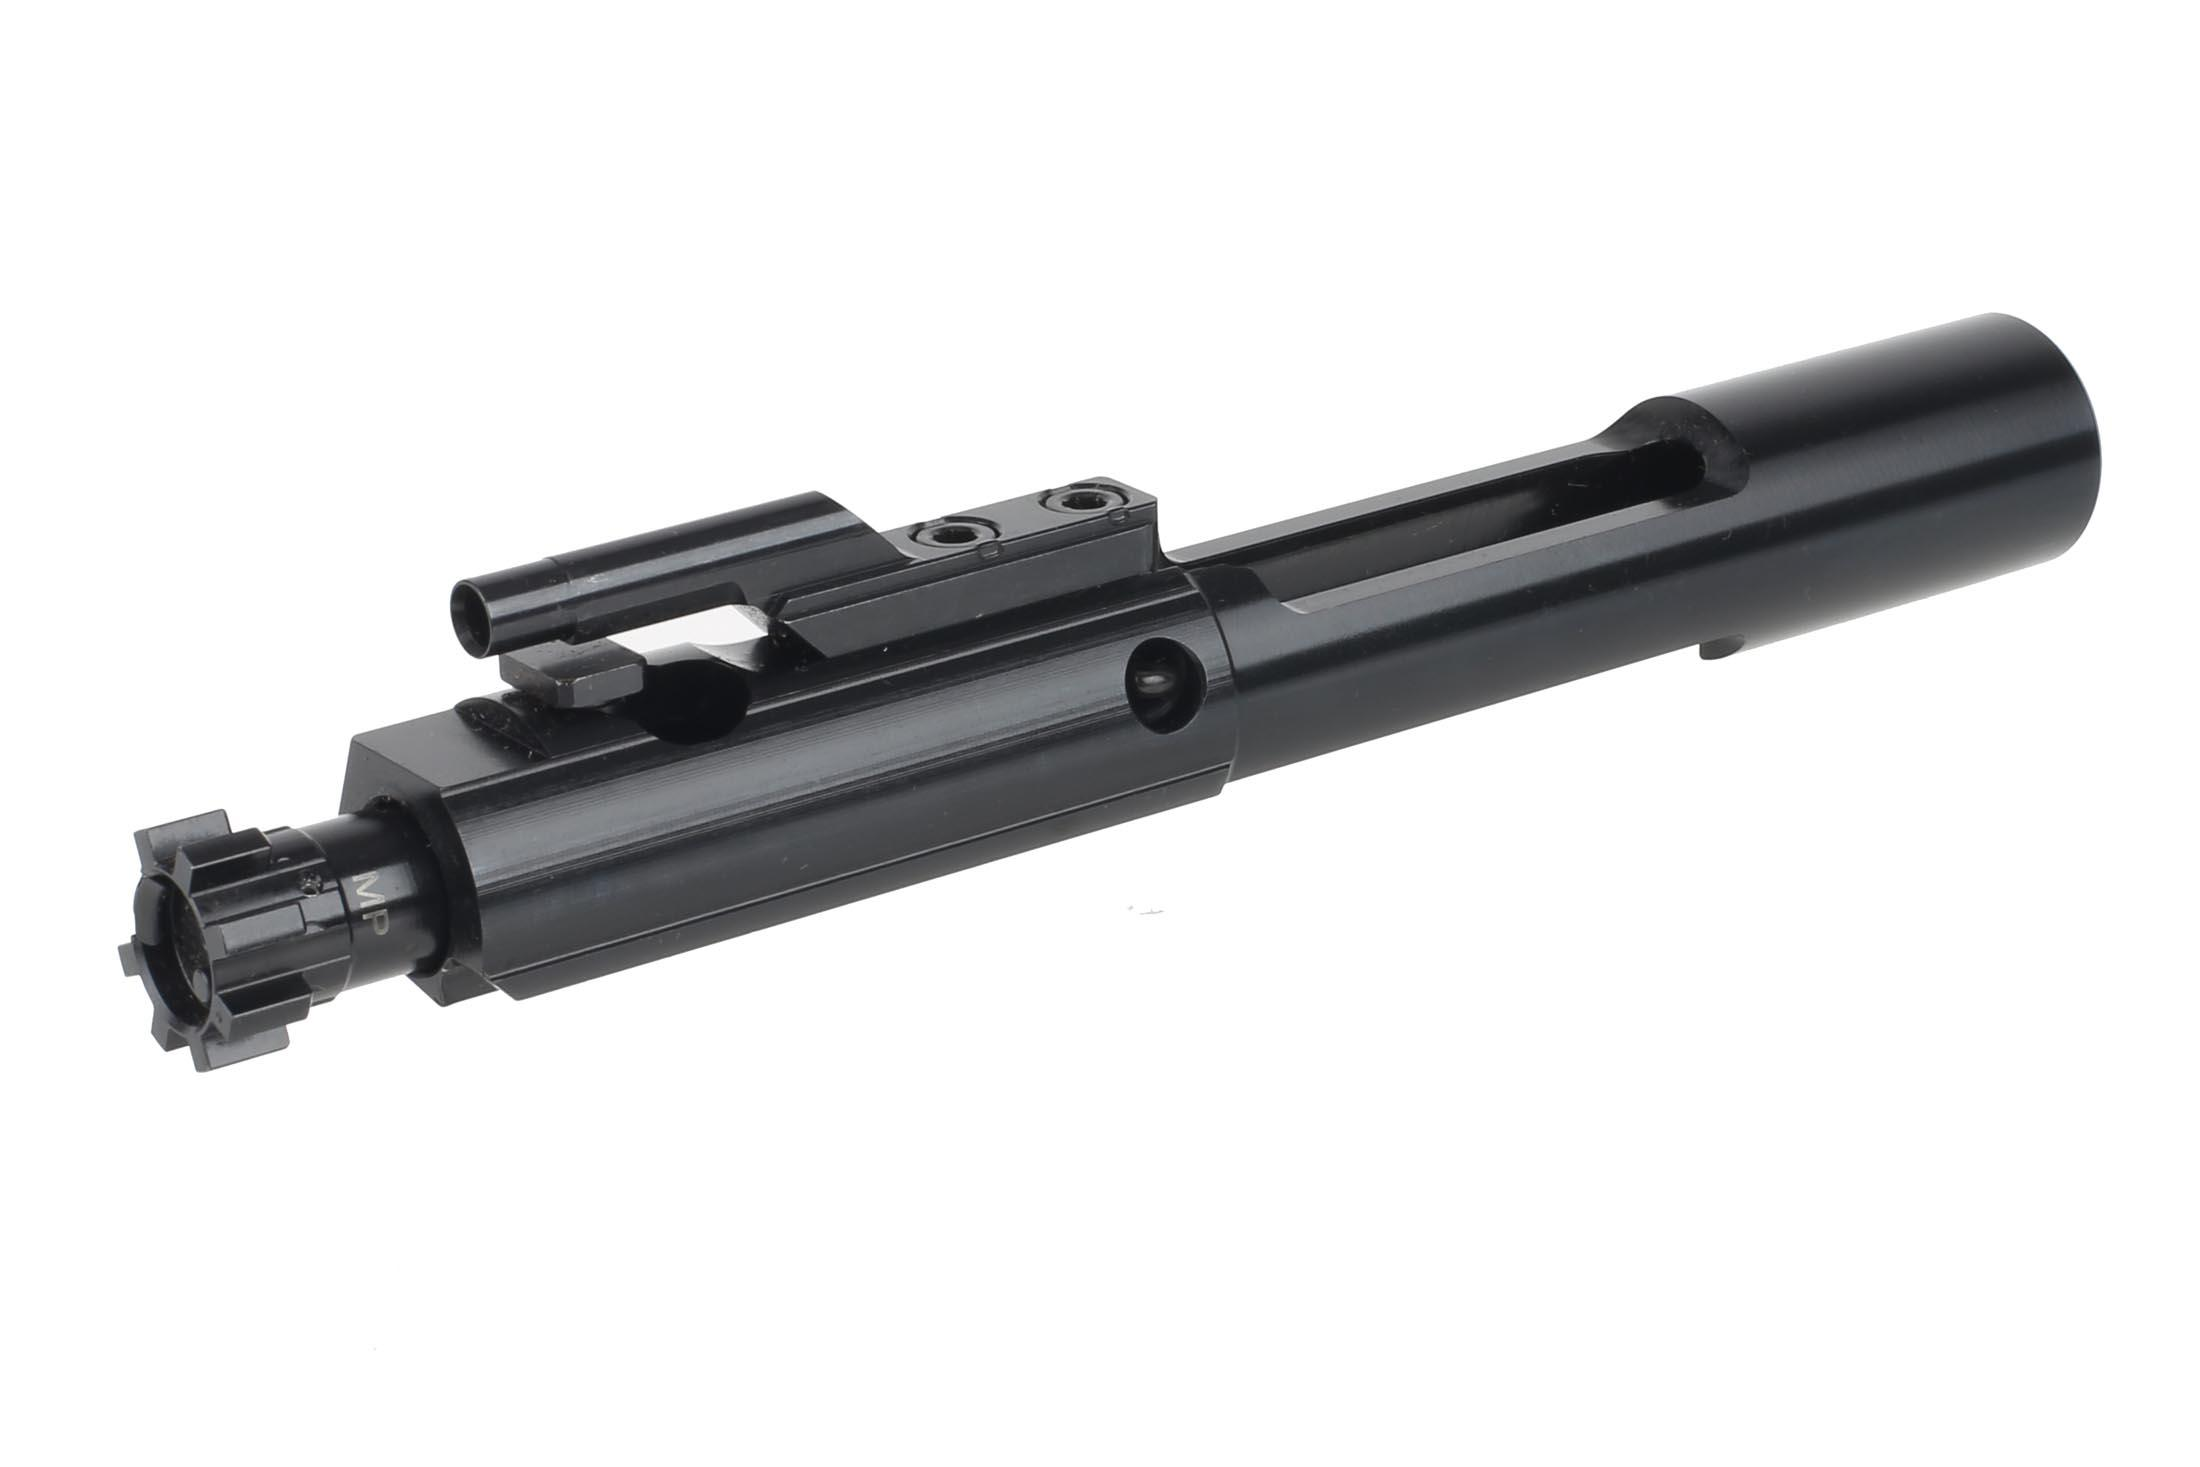 Anderson Manufacturing Complete M16 Bolt Carrier Group - 7.62x39mm